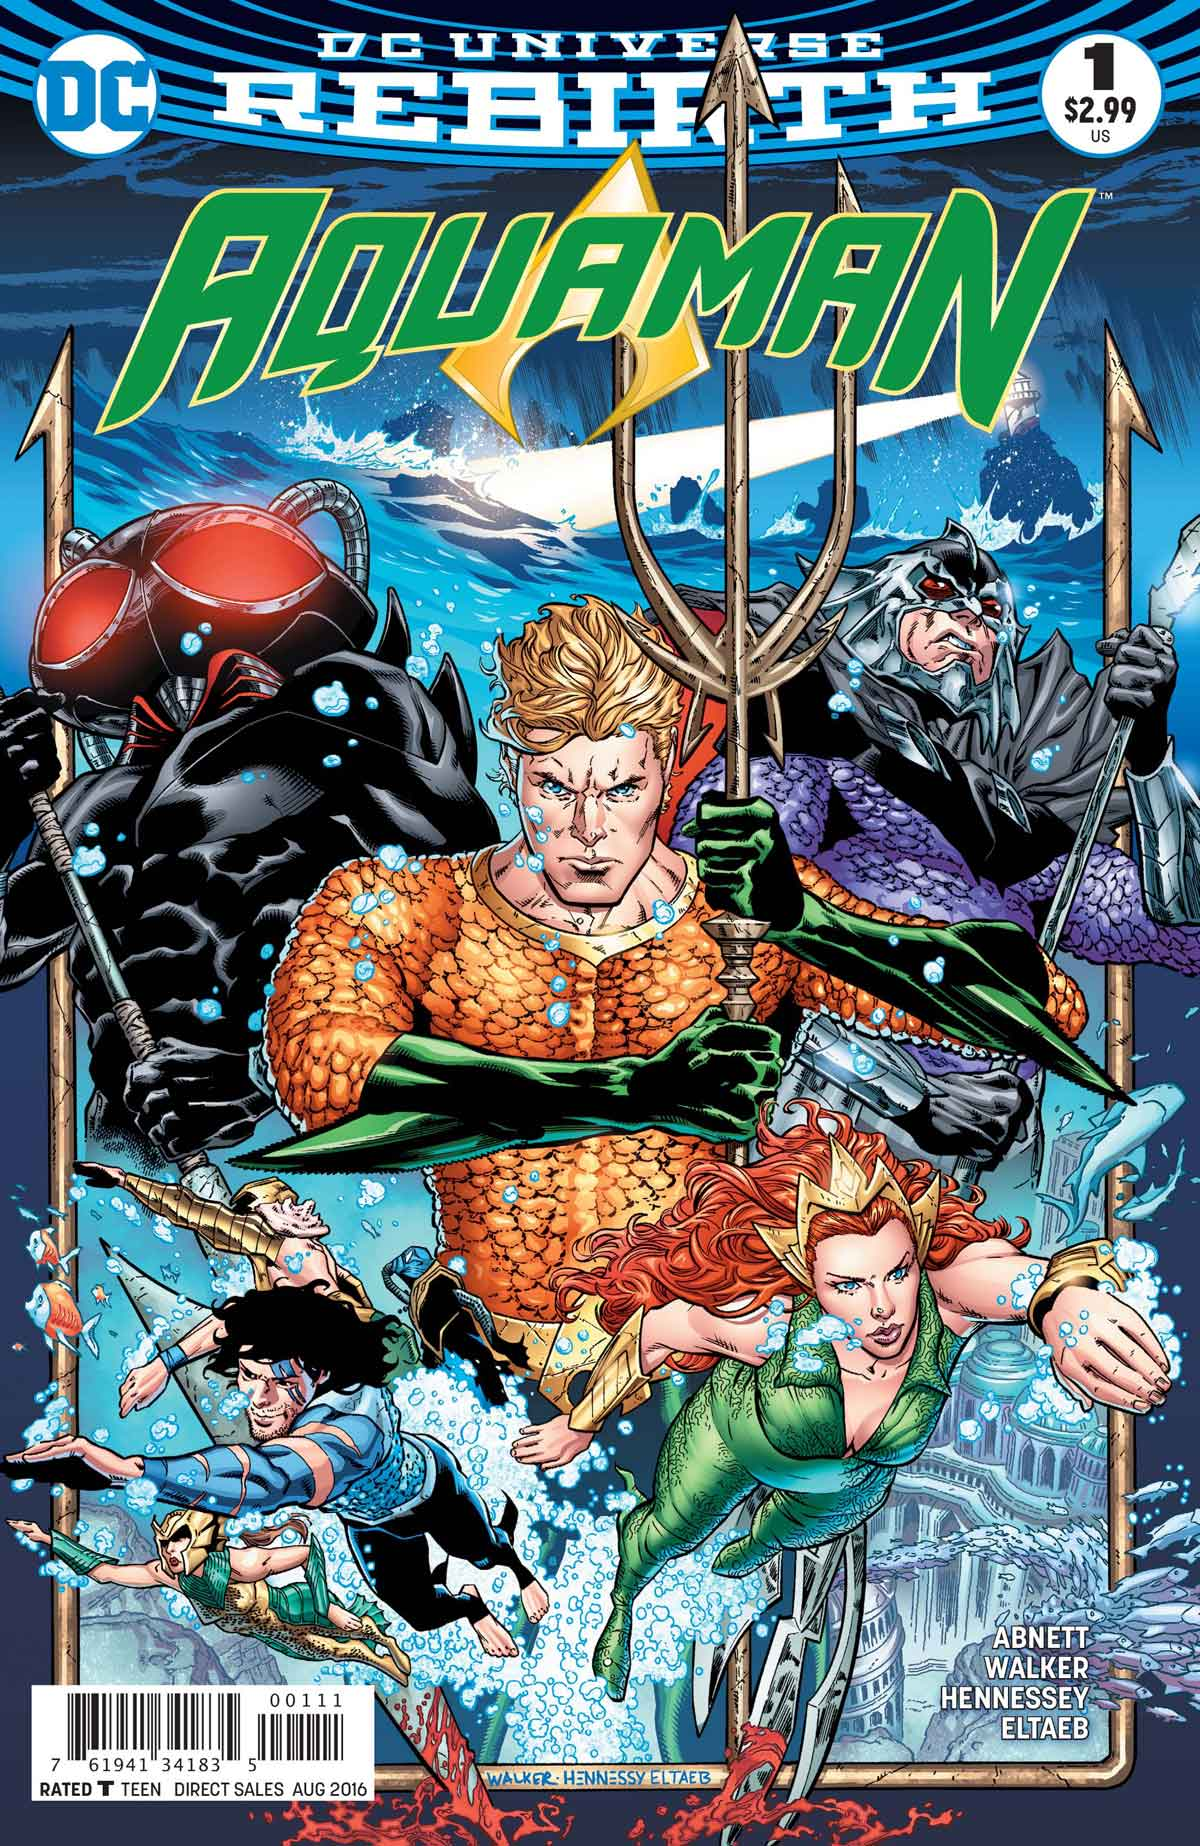 Aquaman #1 by Dan Abnett, Brad Walker, Andrew Hennessey, Gabe Eltaeb, and more